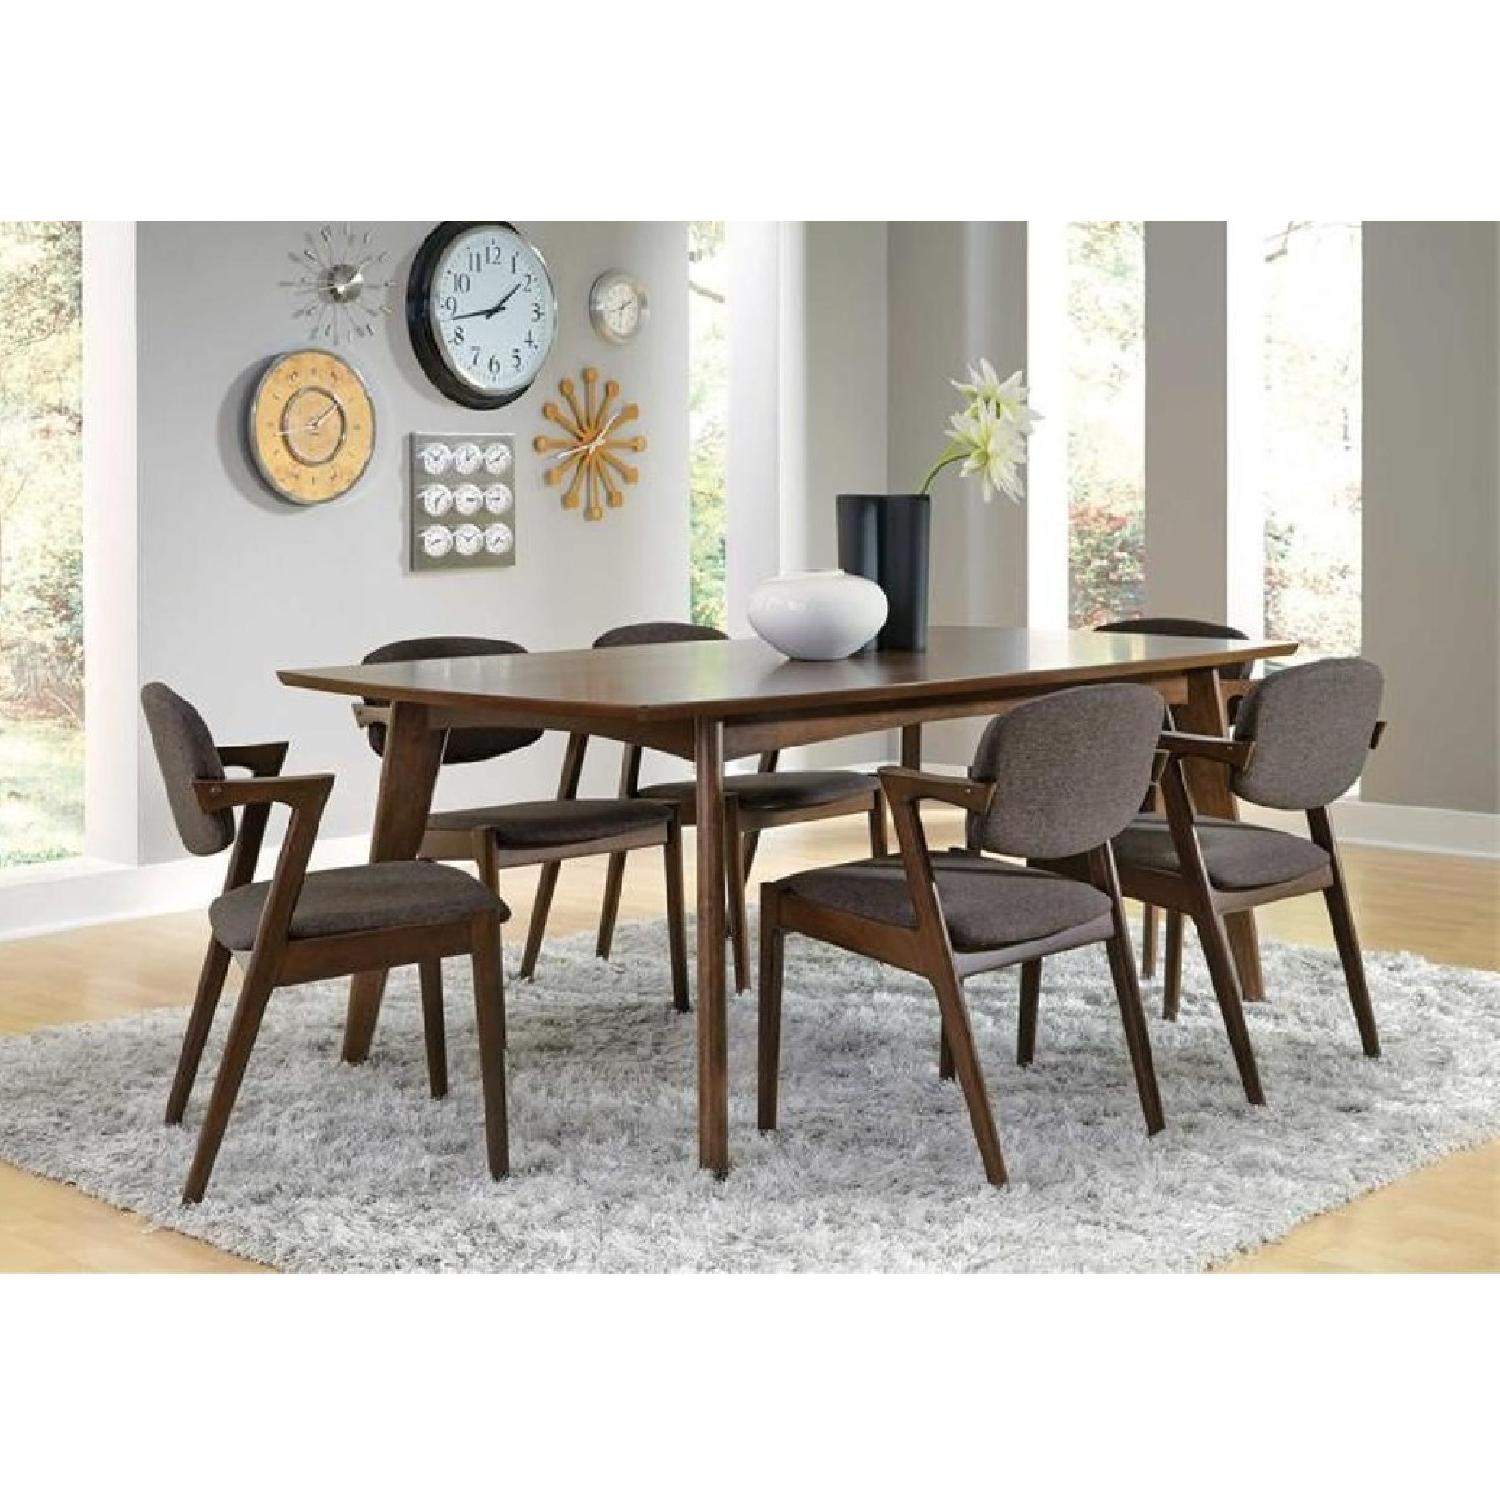 Coaster Dark Walnut Wood Dining Table